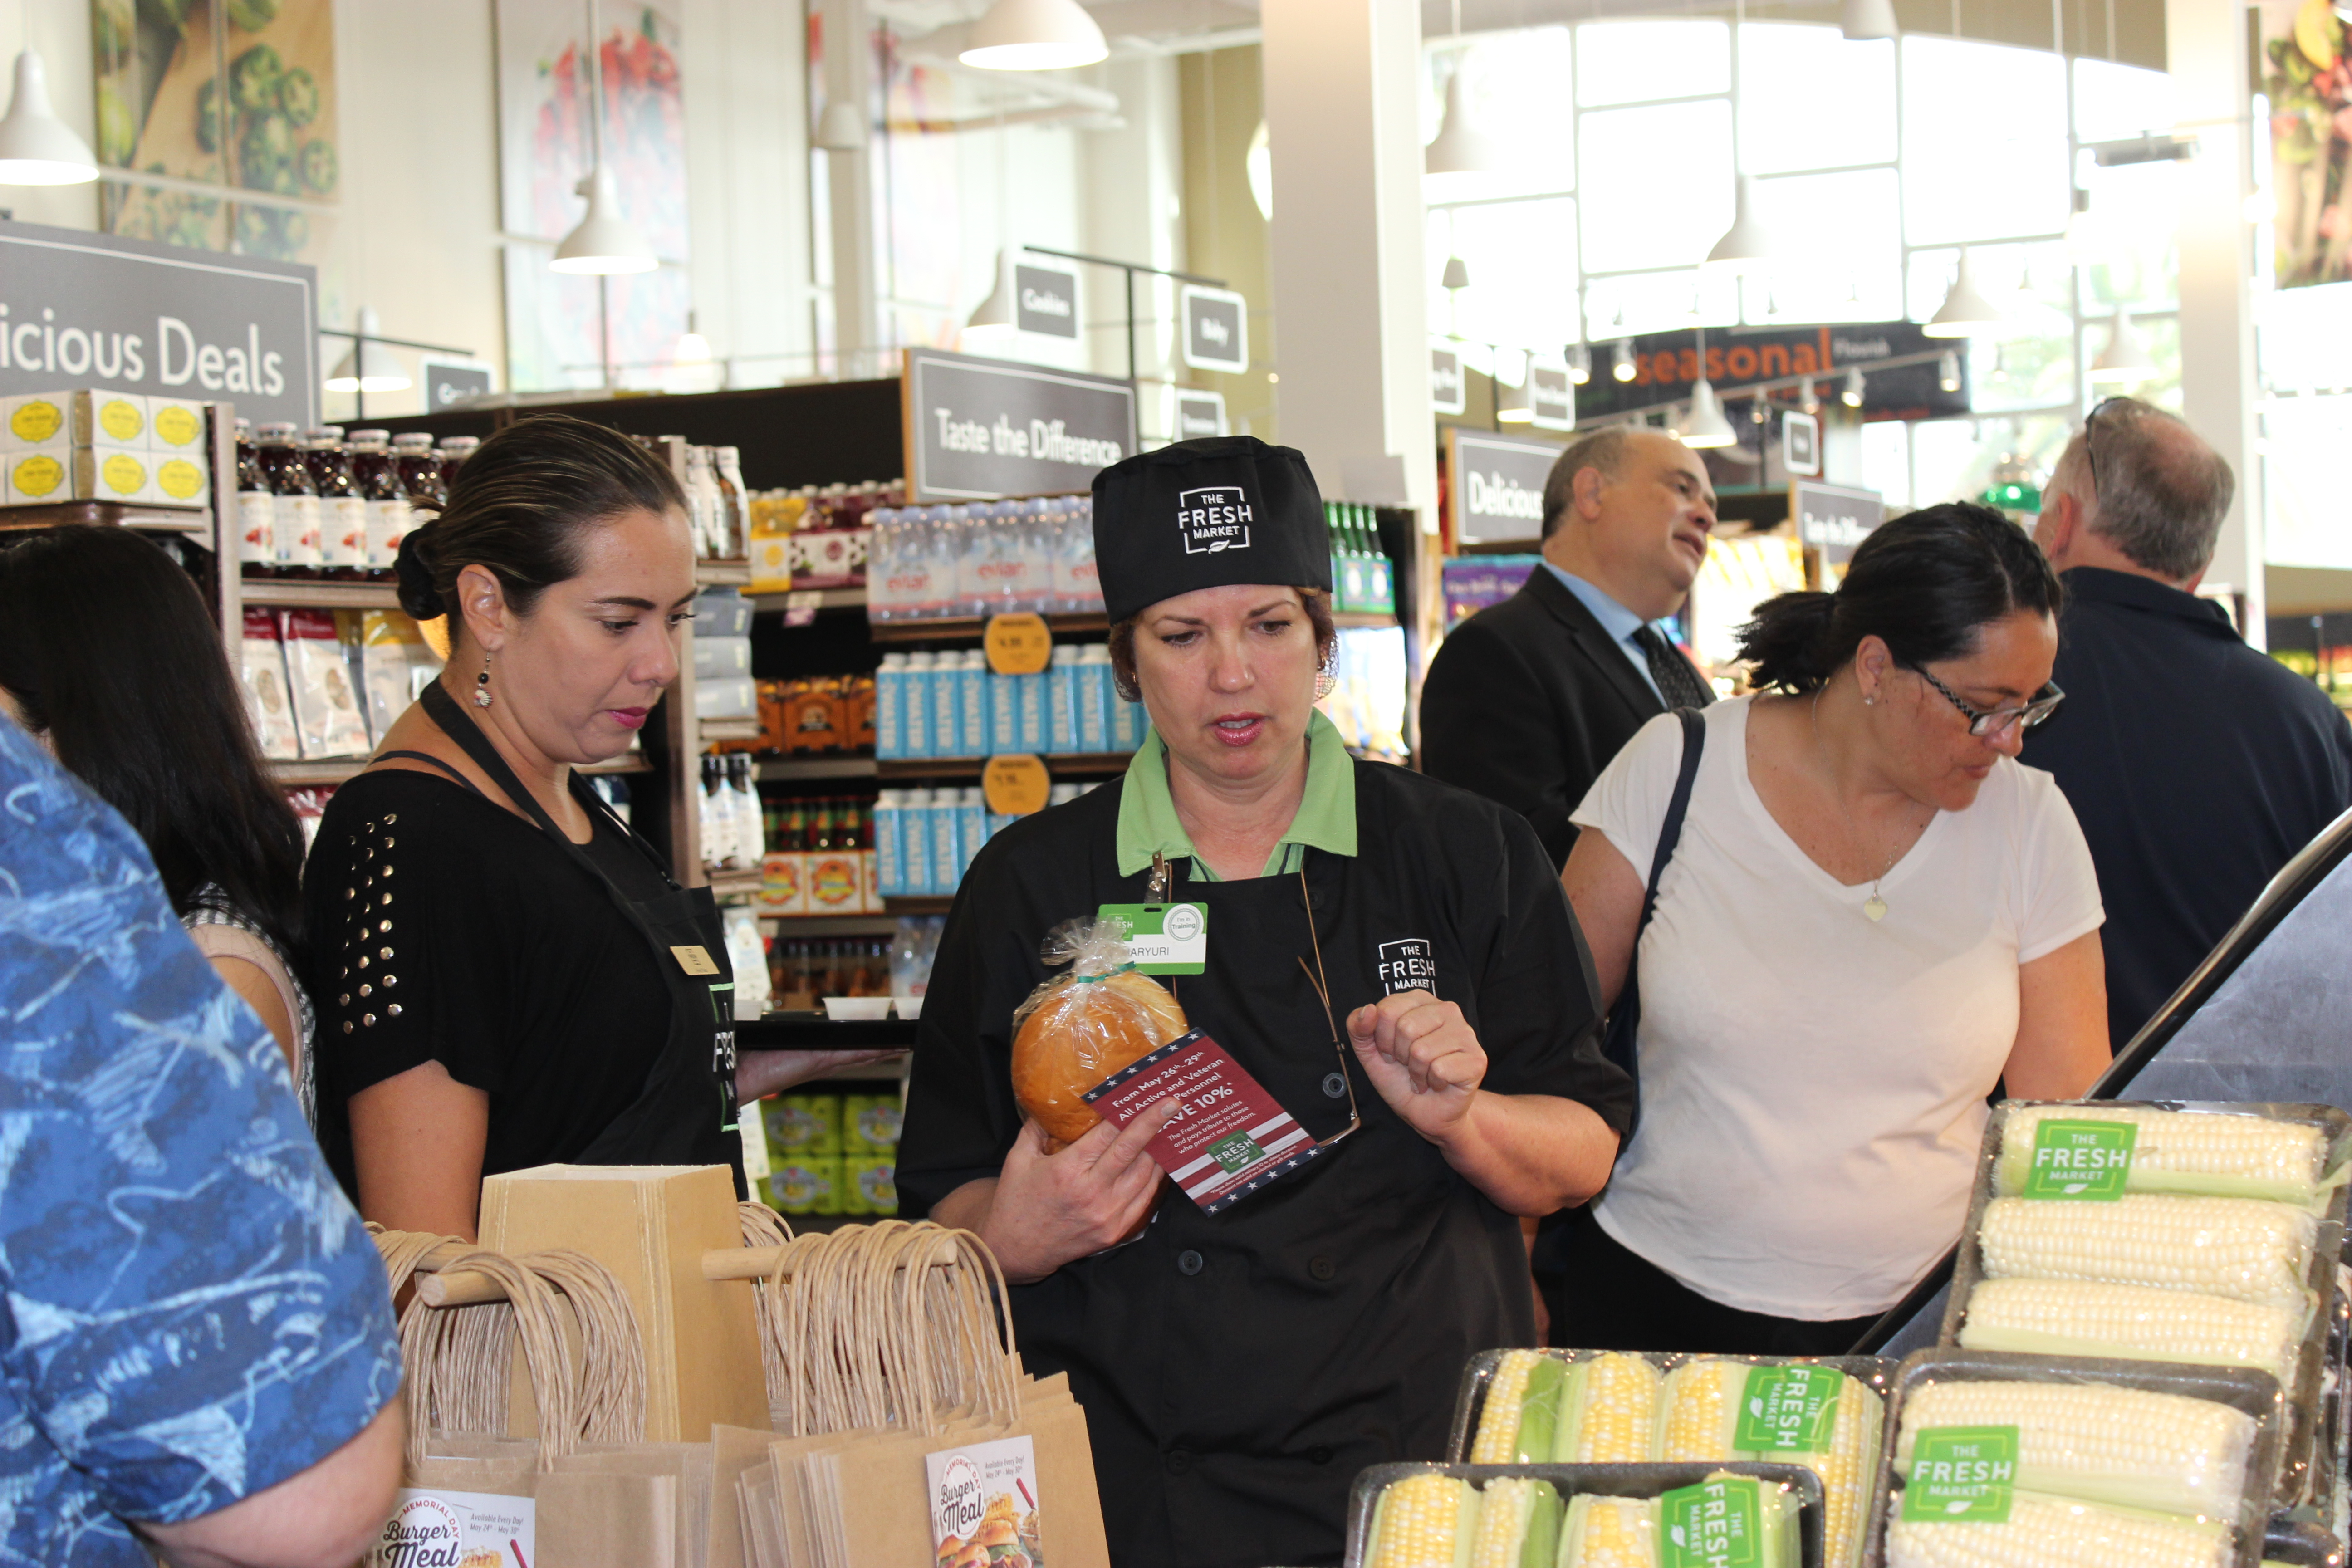 The Fresh Marketing Grand Opening, a Doral Chamber of Commerce event.